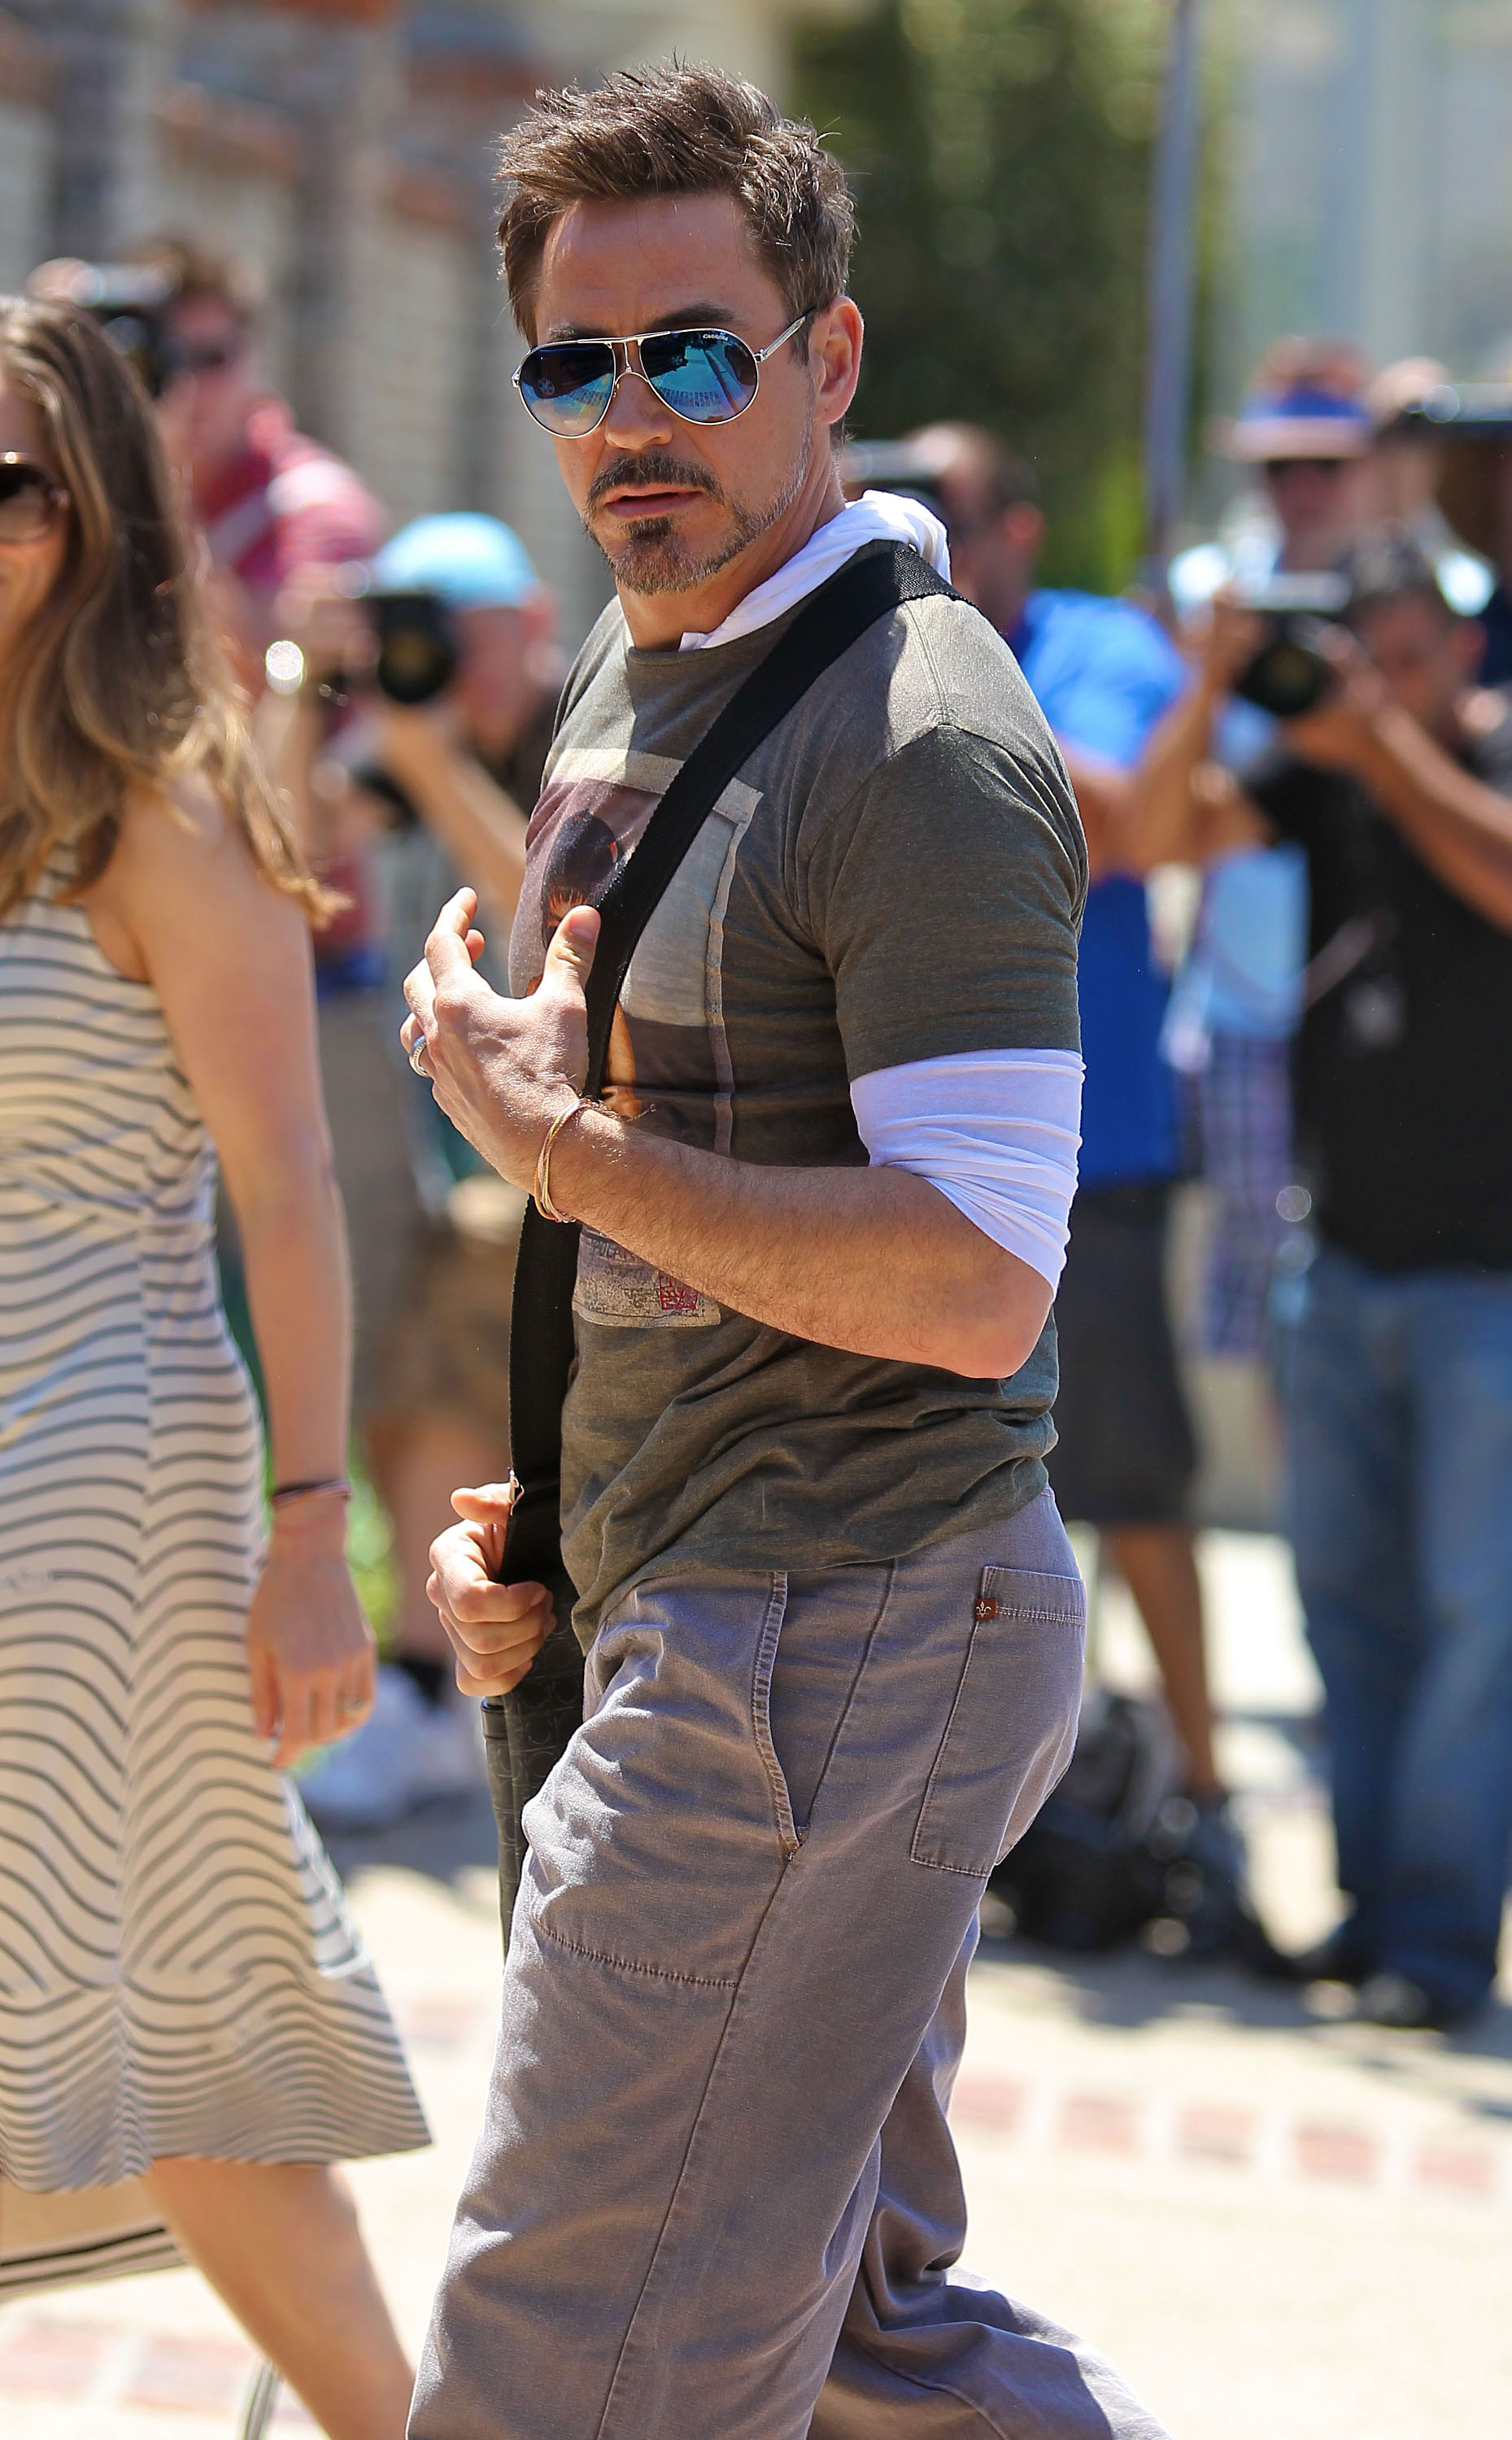 Robert Downey Jr. walked into Joel Silver's Memorial Day party in LA.